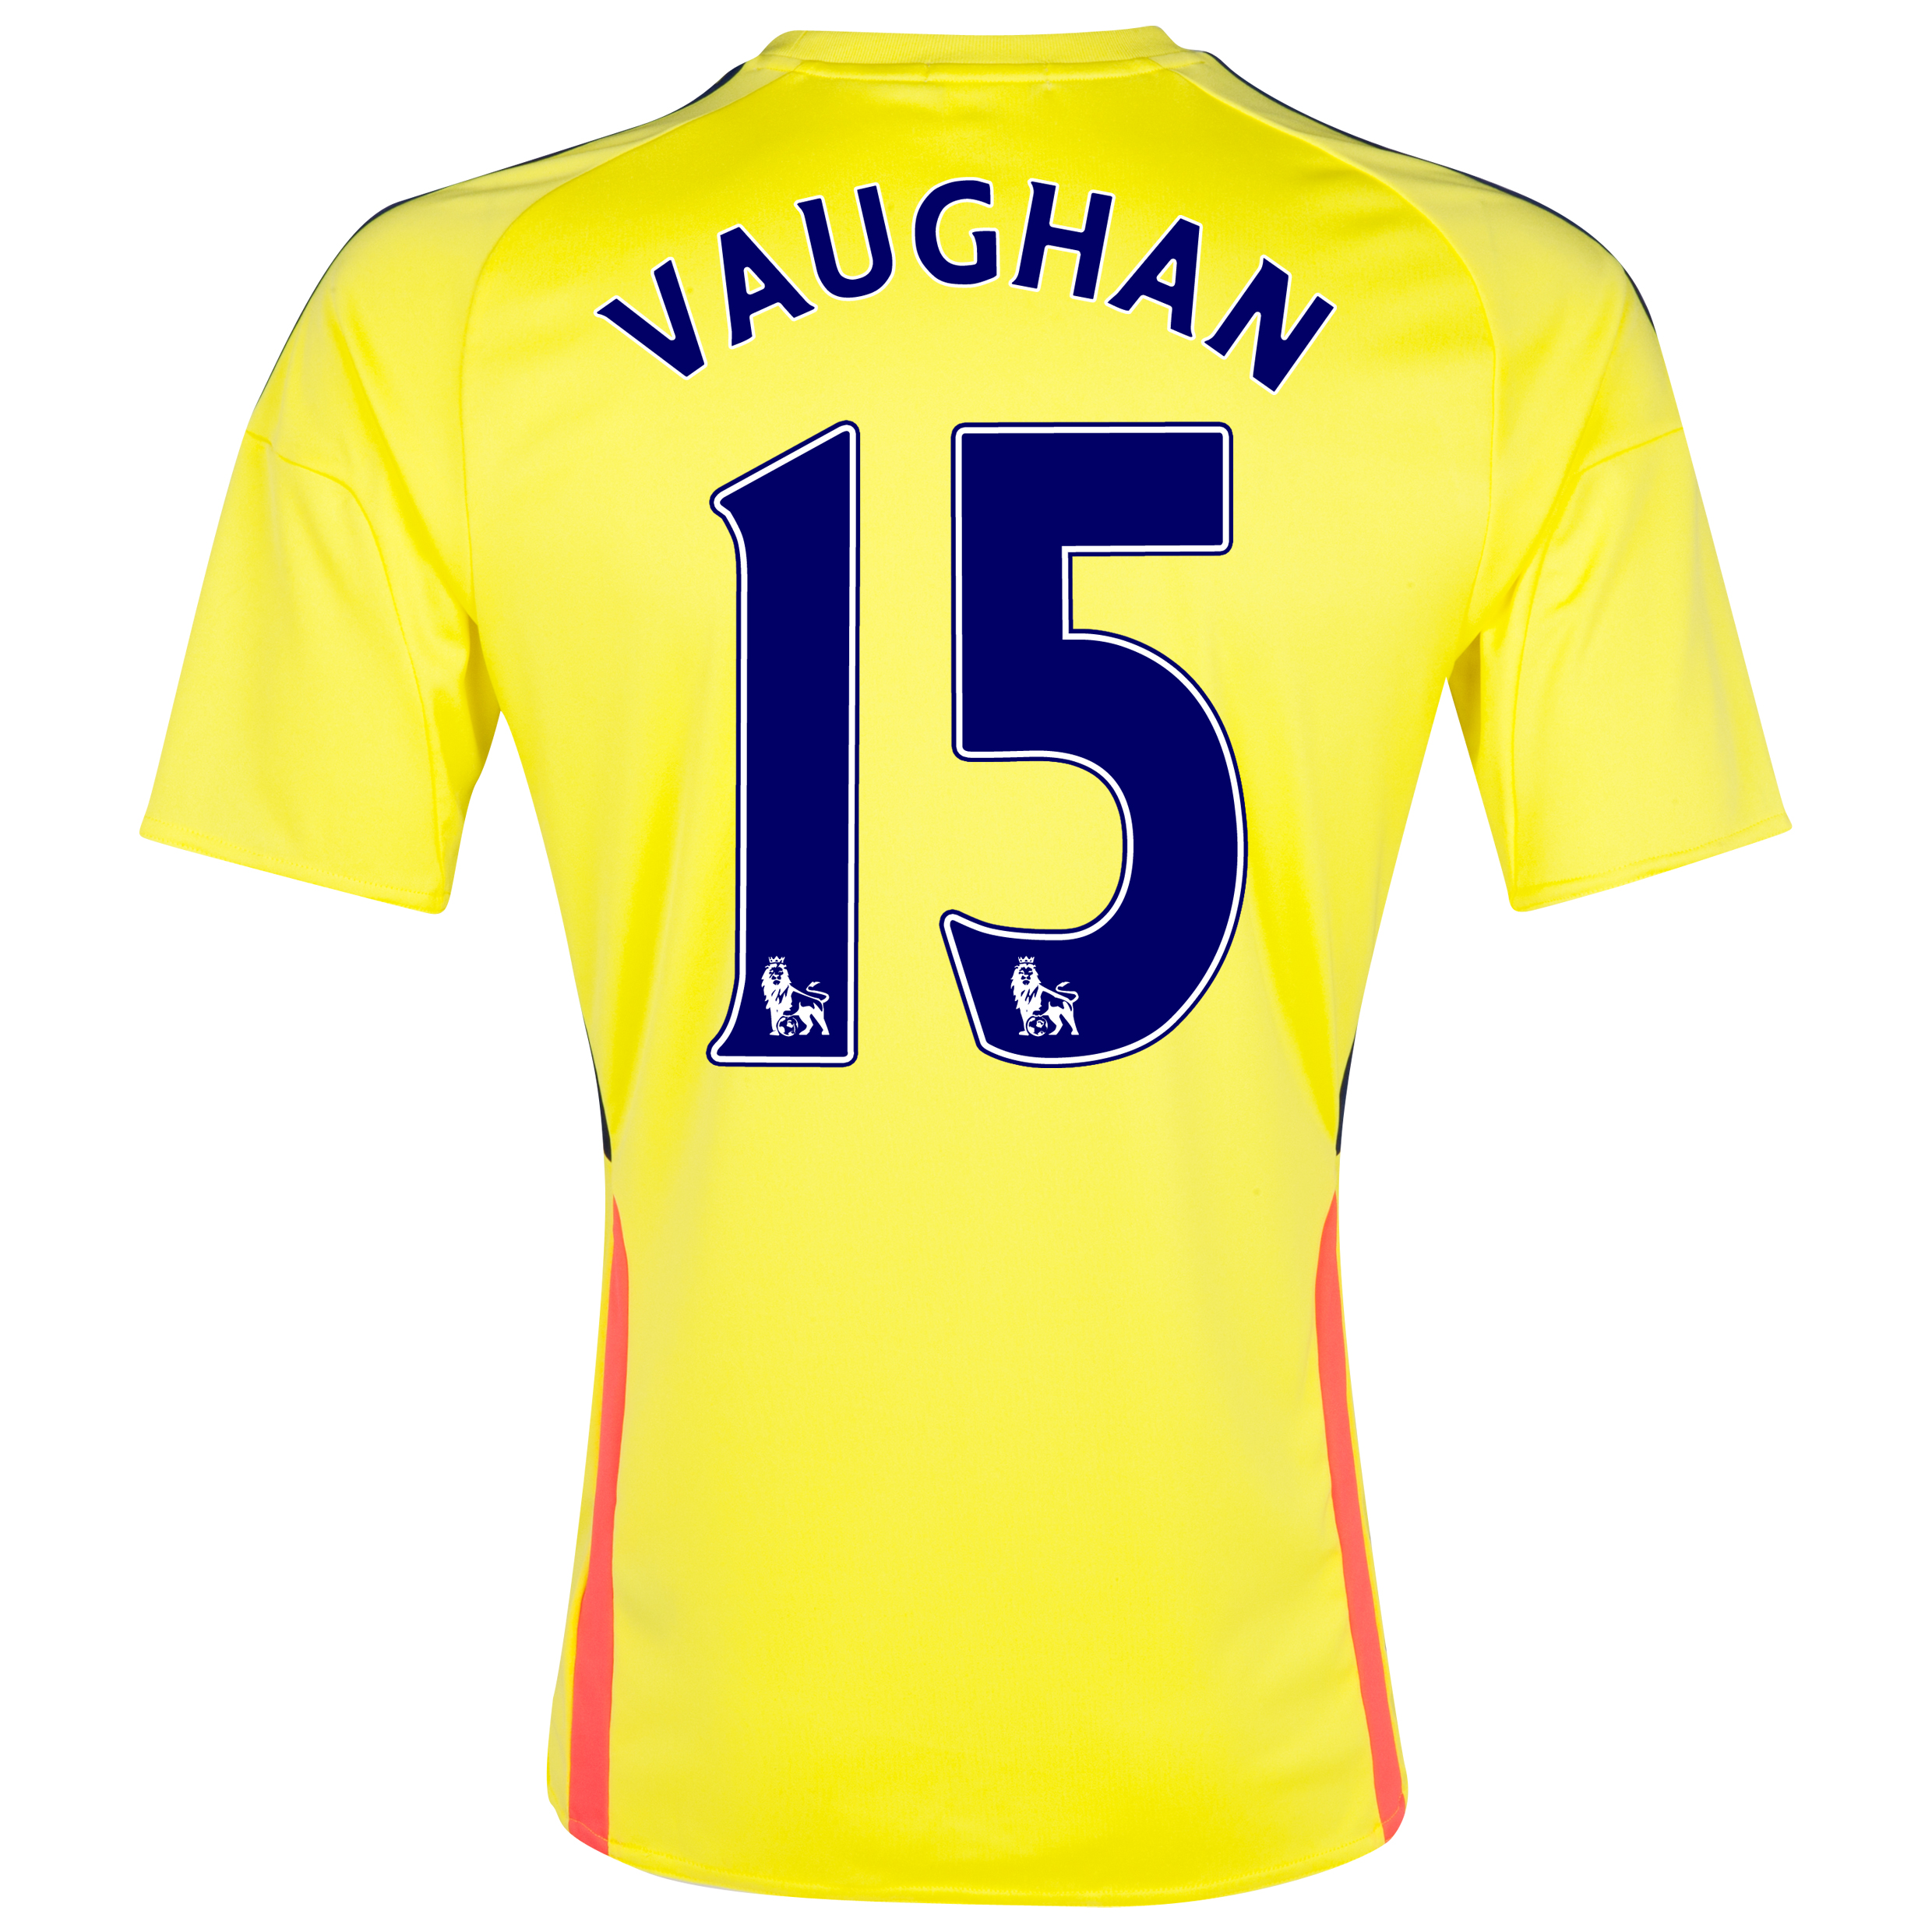 Sunderland Away Shirt 2013/14 with Vaughan 15 printing